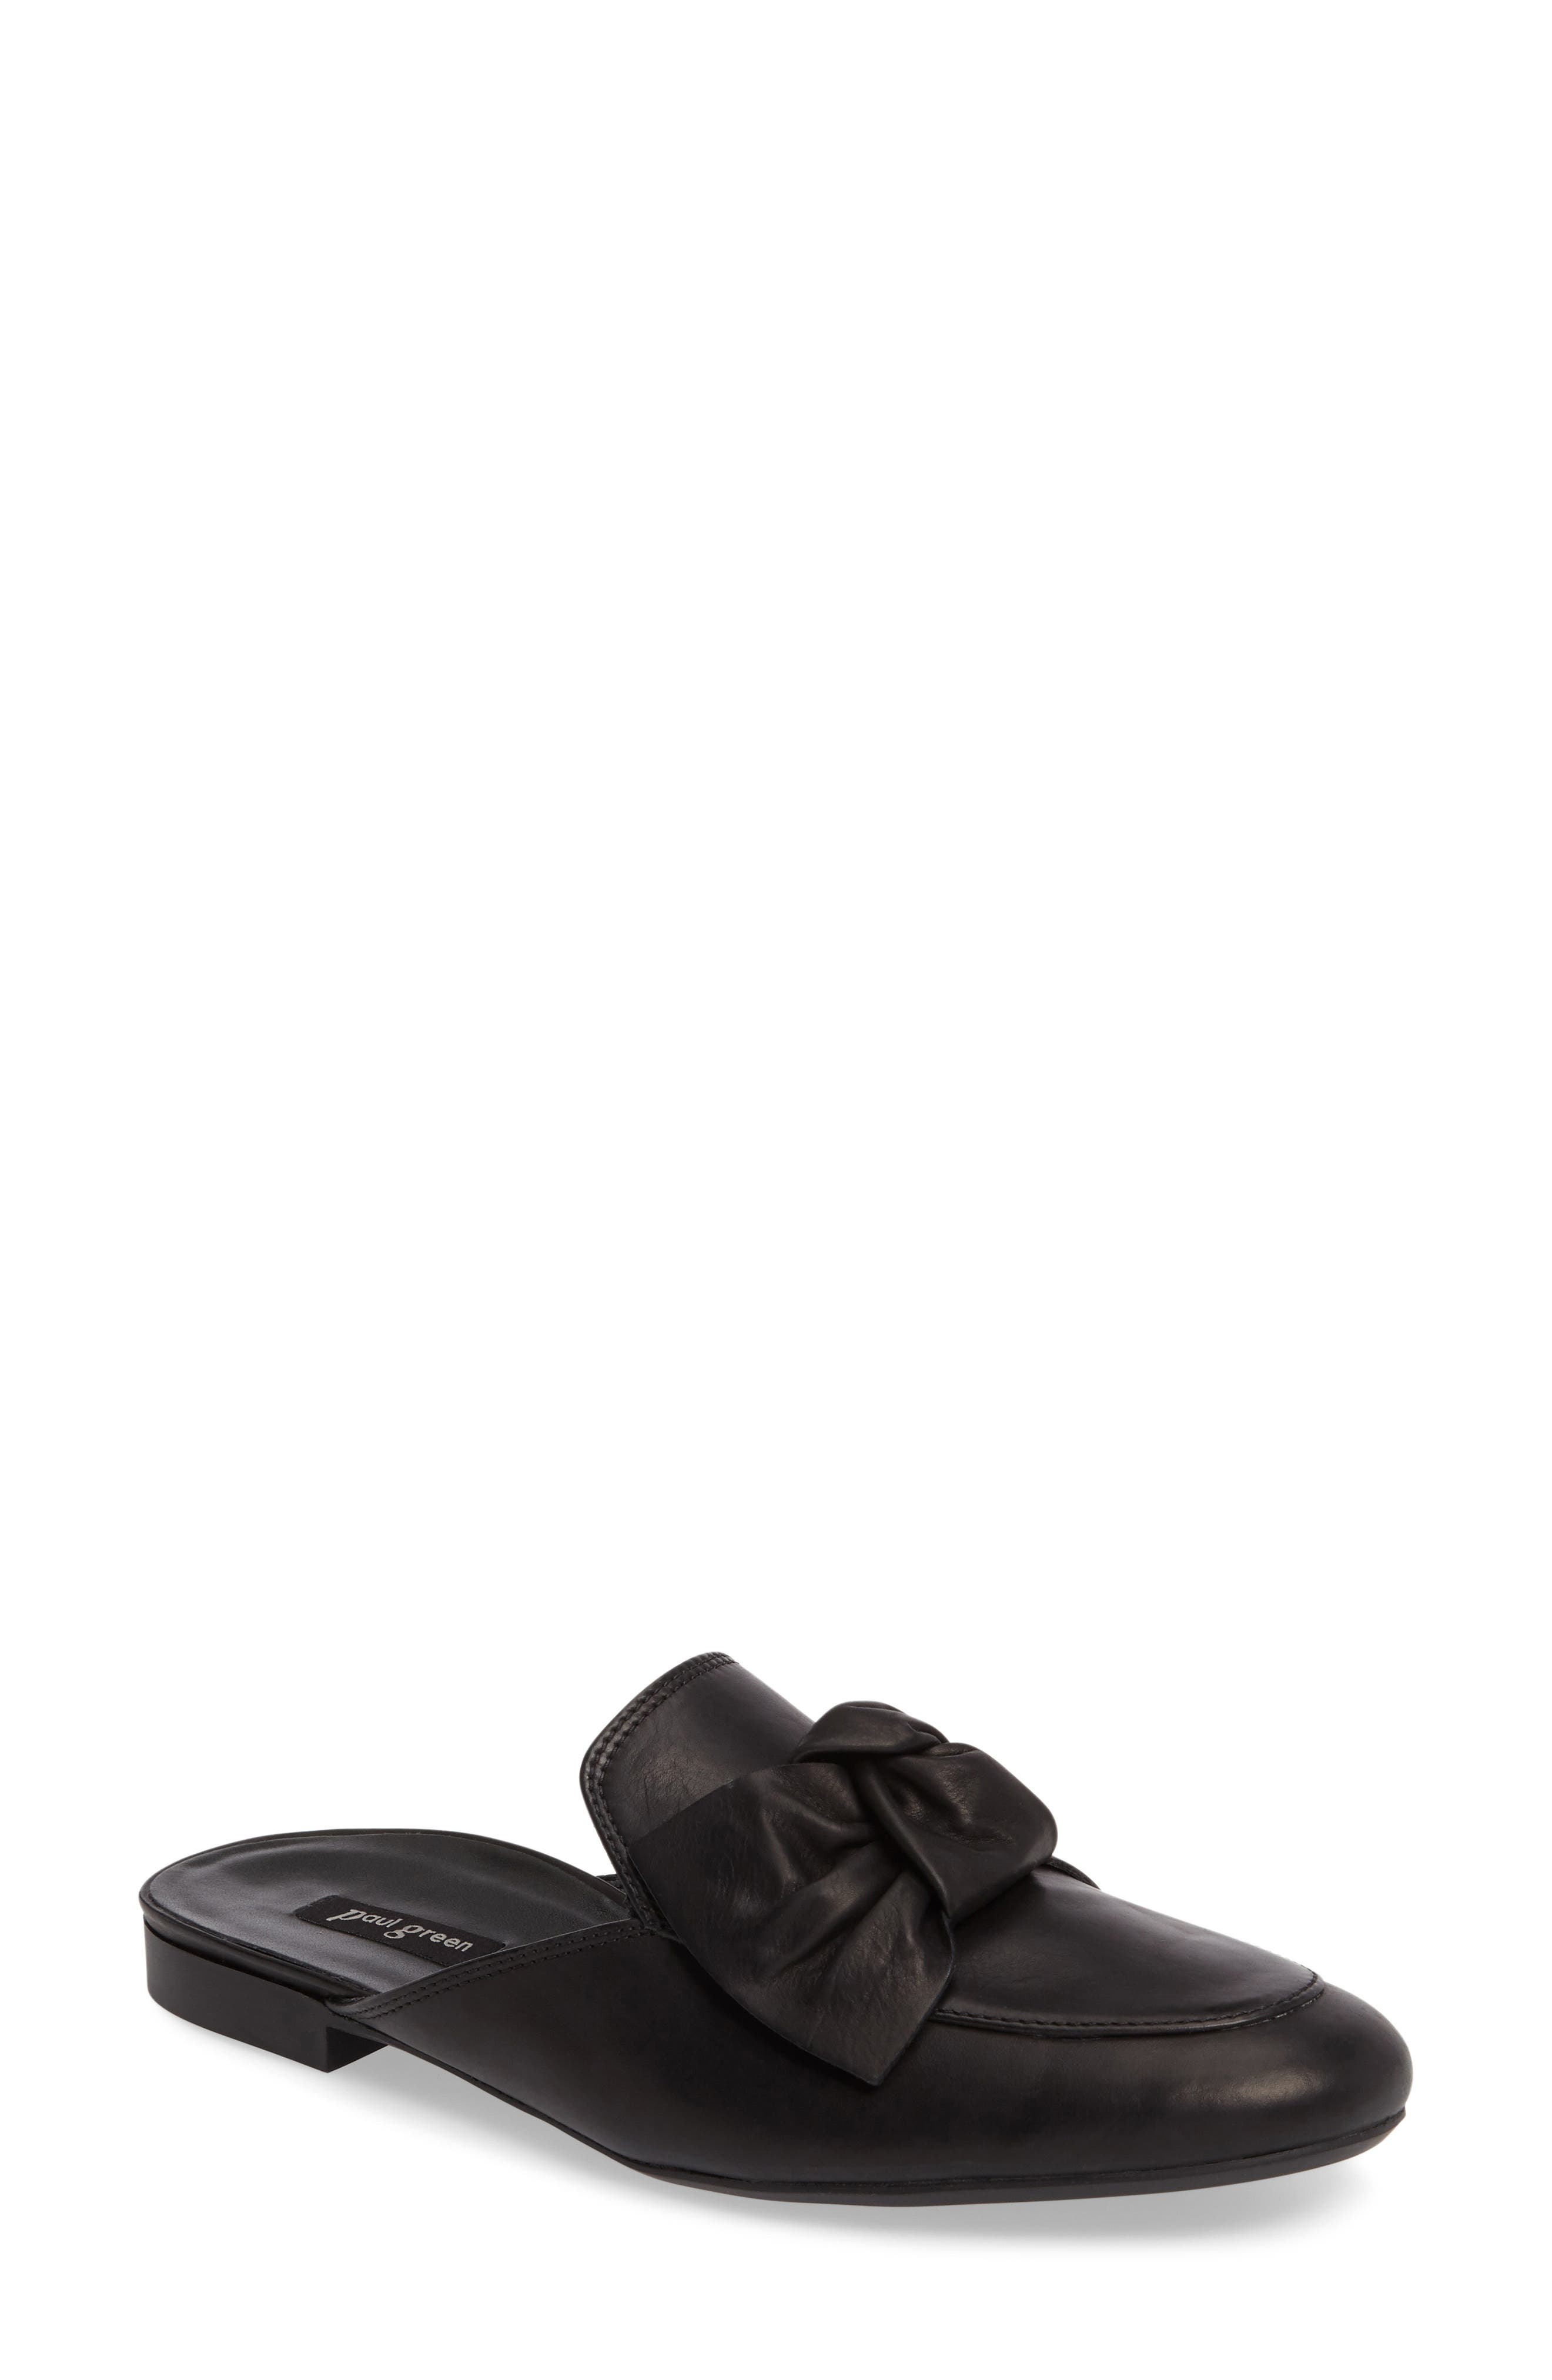 Mary Bow Mule Loafer,                         Main,                         color, Black Leather